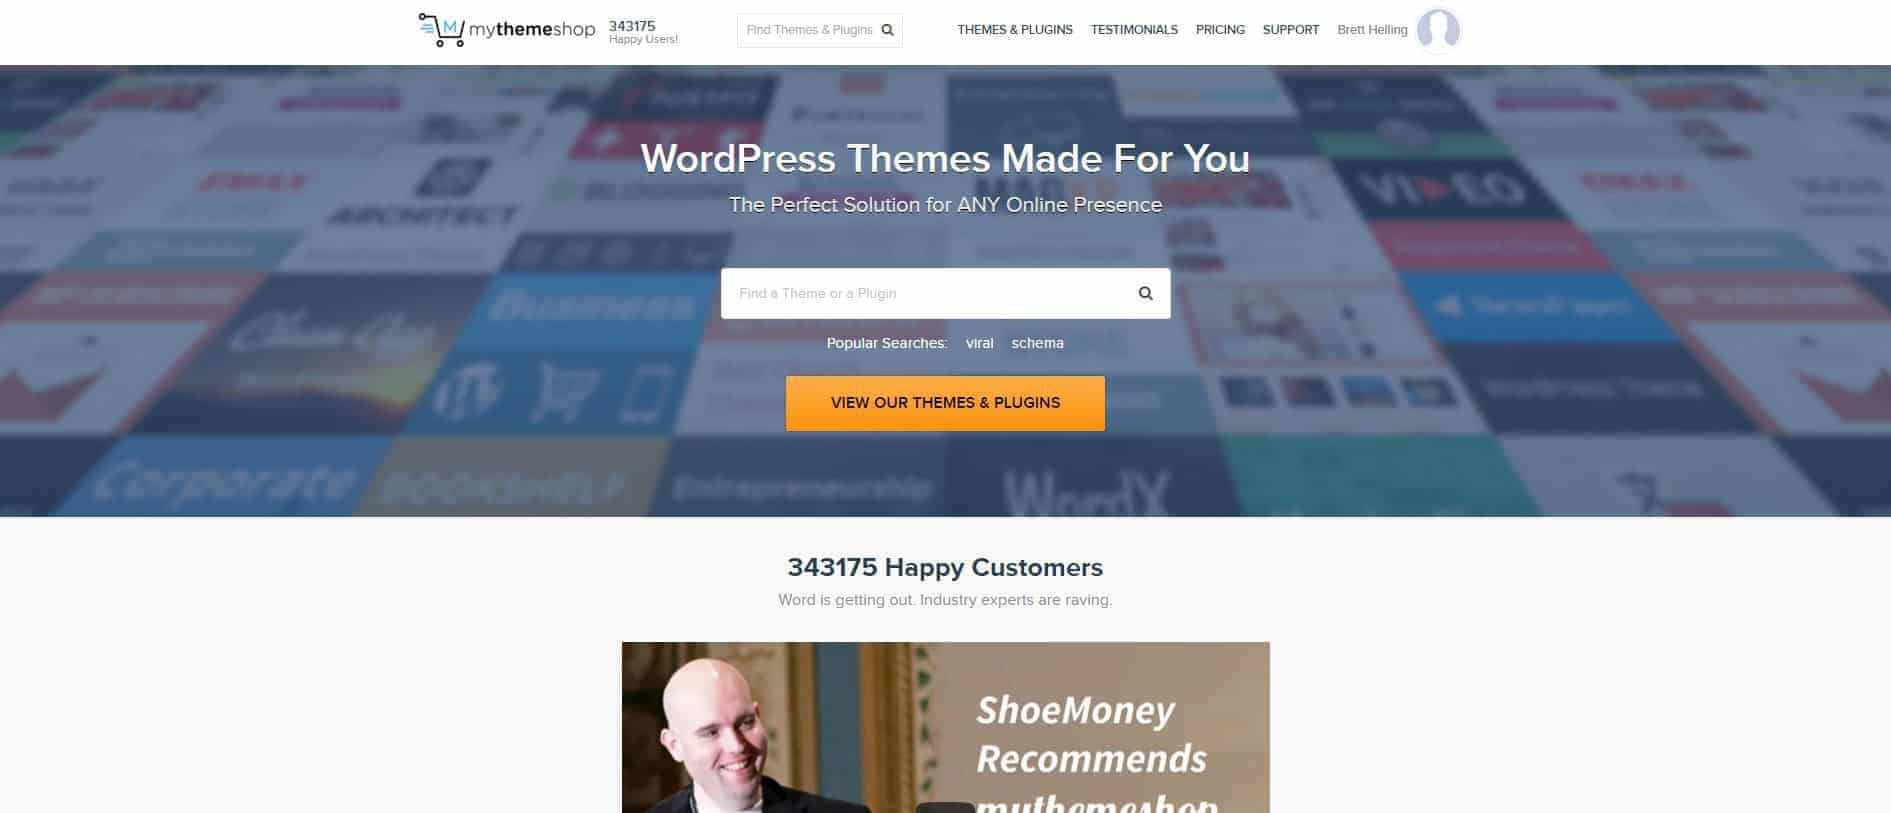 The Best MyThemeShop Themes of 2016 85ideascom